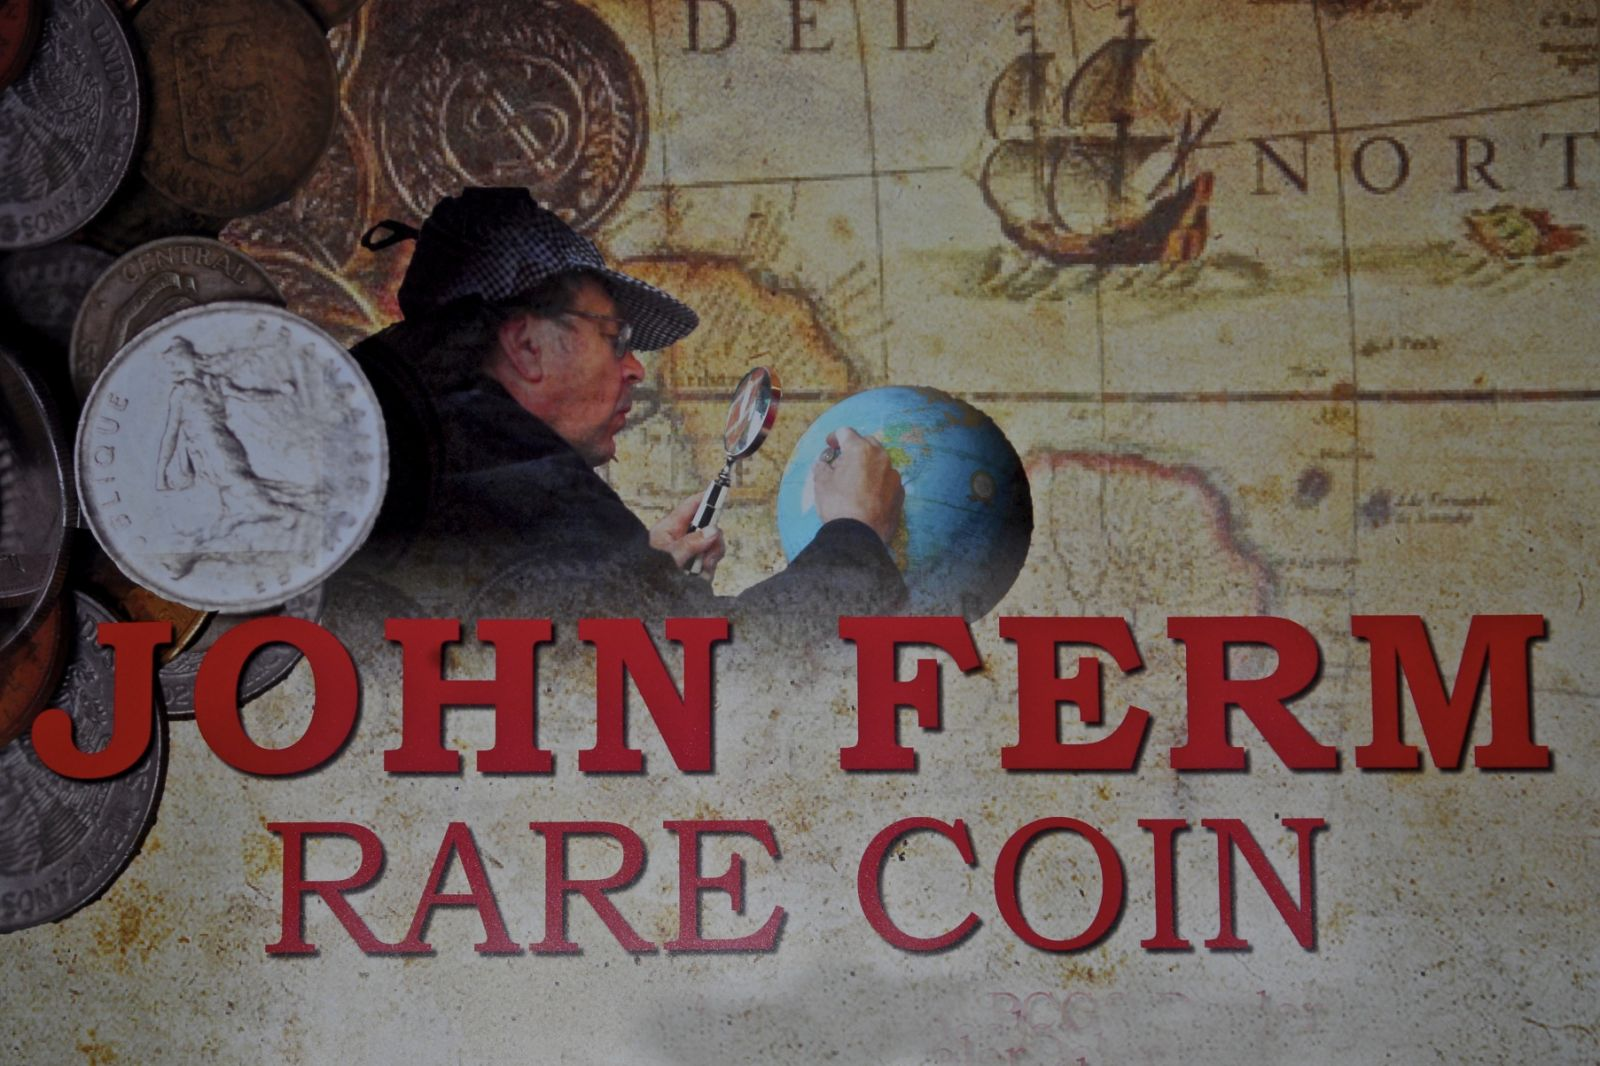 The Sherlock Holmes of the Coin Industry